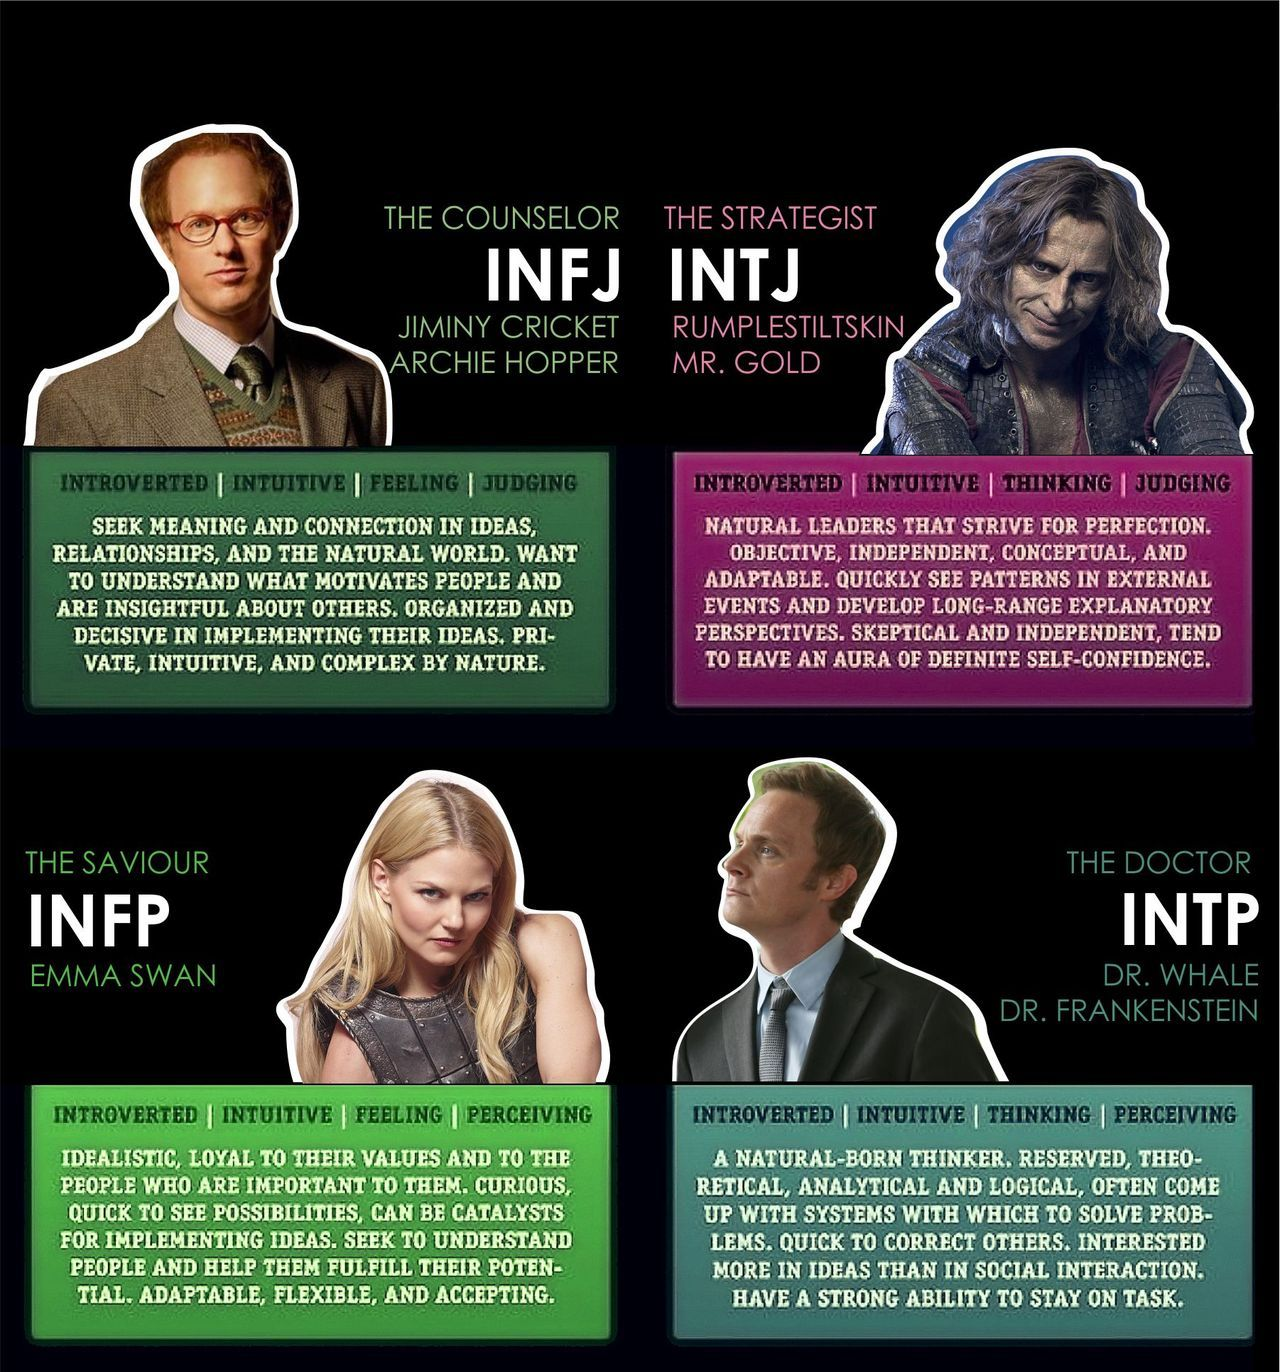 introverted intuitive feeling judging infj